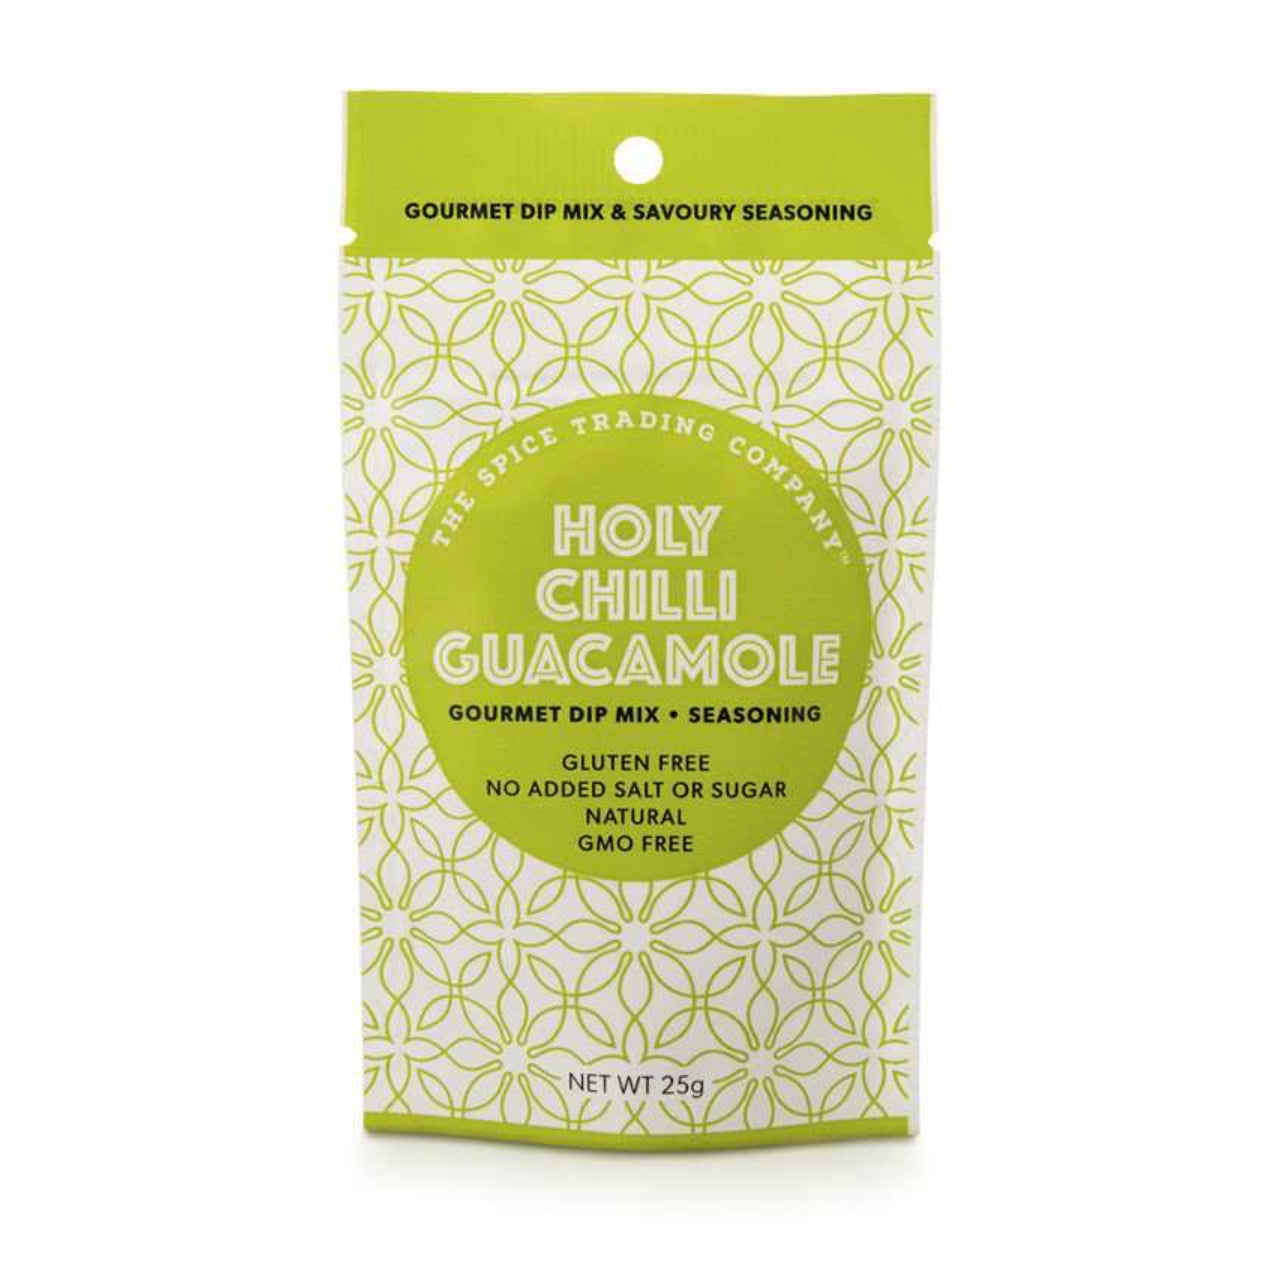 The Spice Trading Co Holy Chilli Guacamole